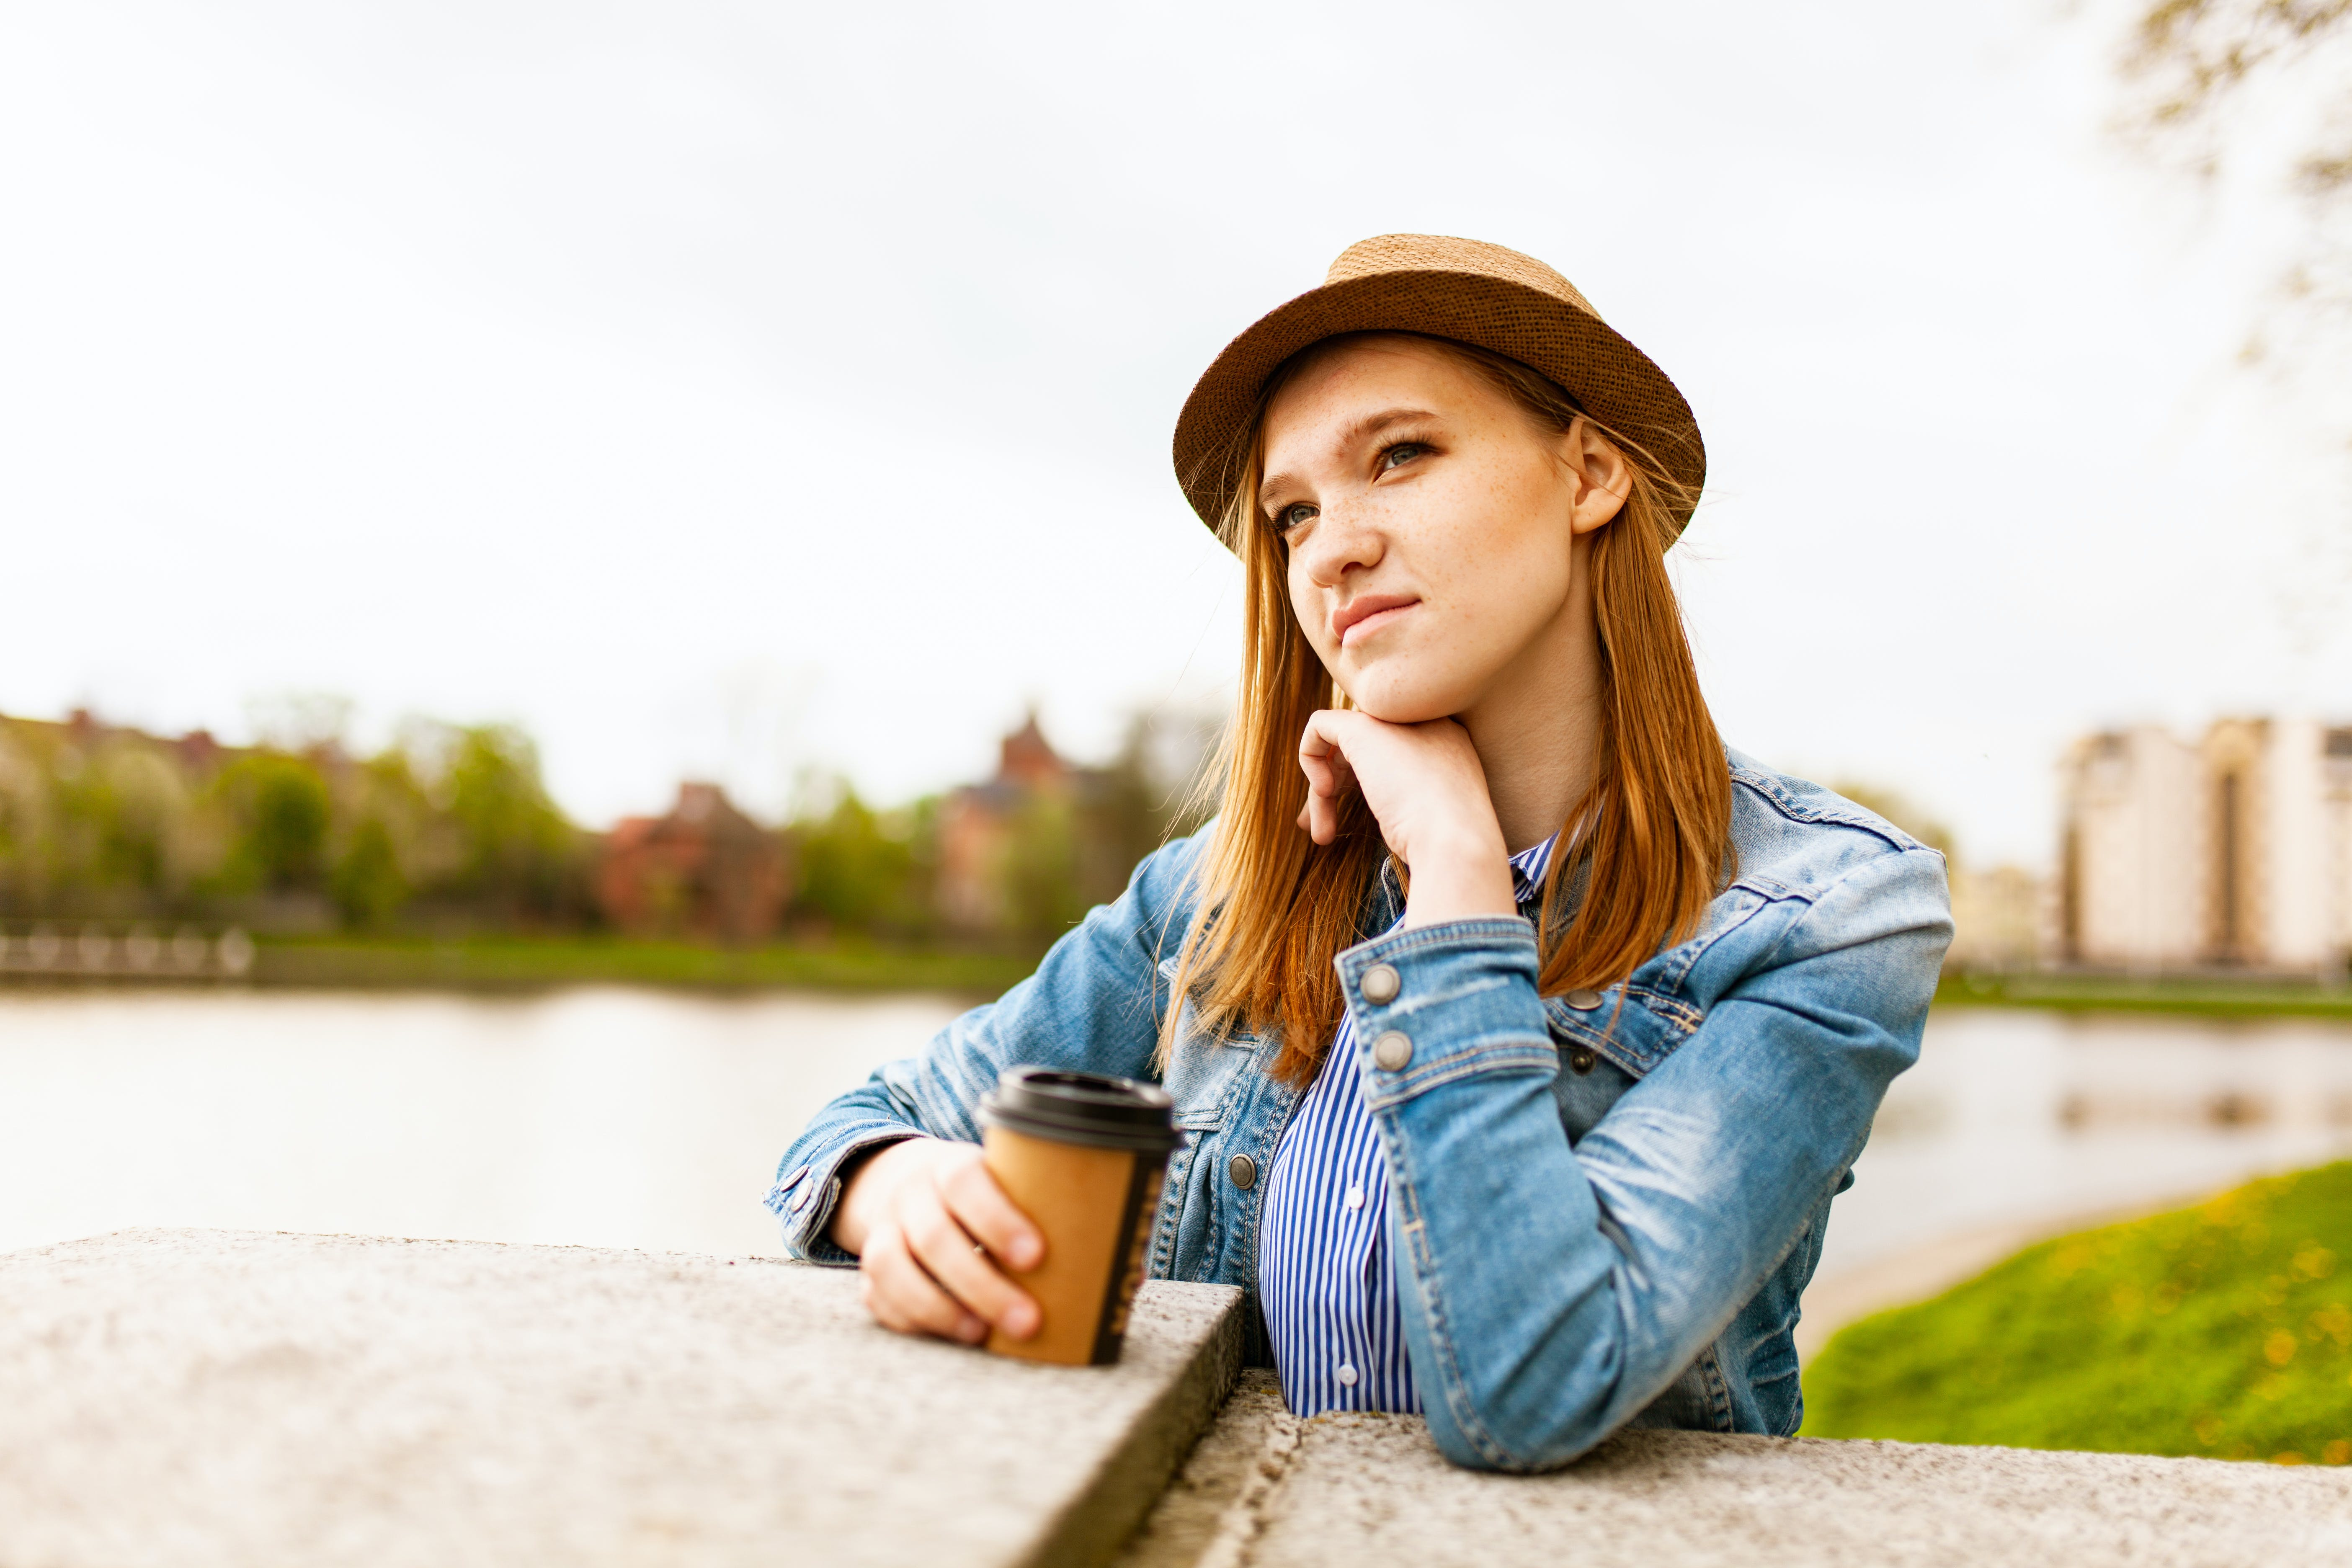 Woman Wearing Blue Denim Jacket Holding Coffee Cup Standing Near Concrete Platform